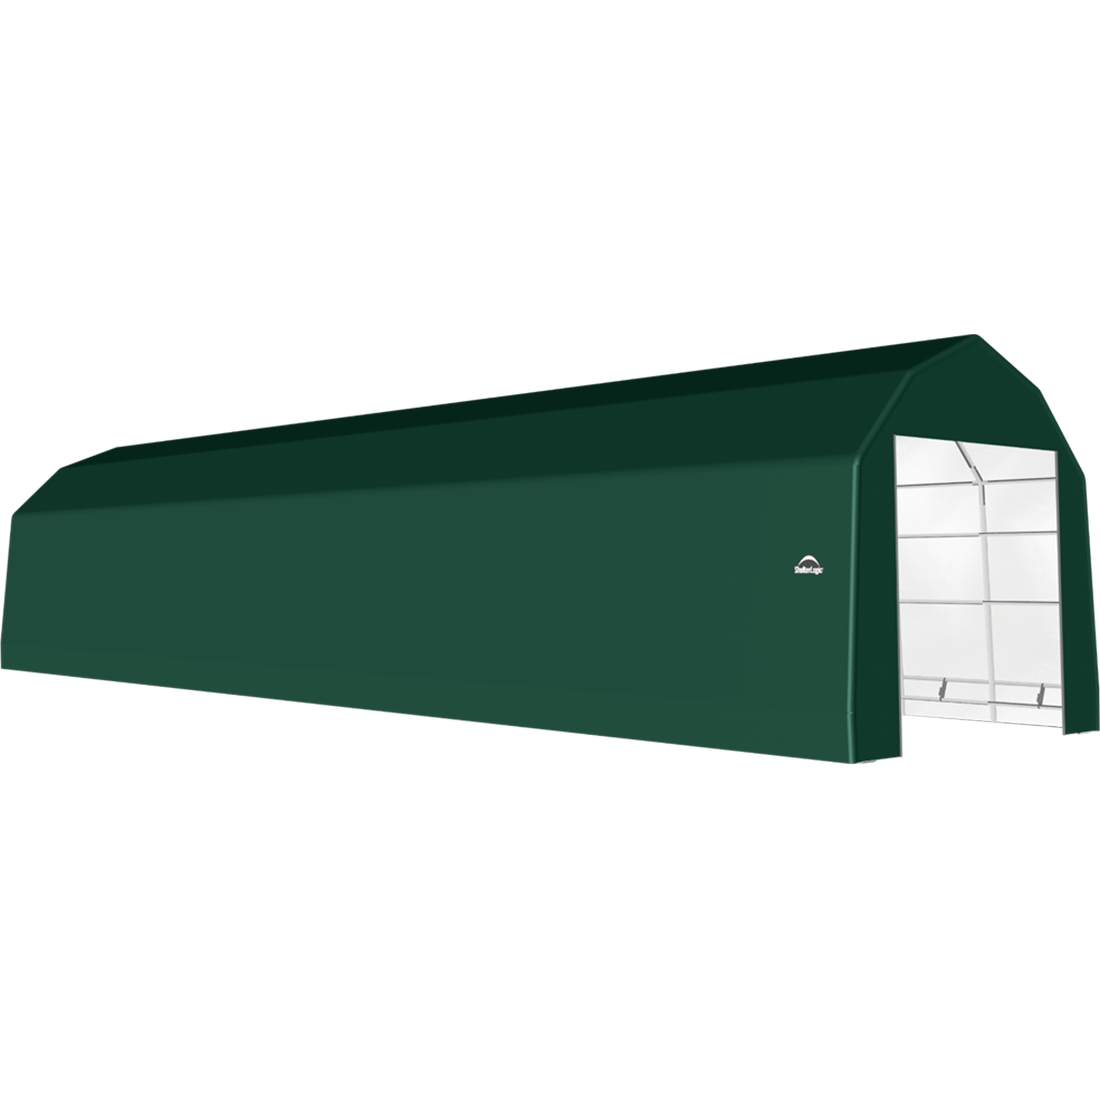 ShelterTech SP Series Barn Shelter, 15 ft. x 56 ft. x 14 ft. Heavy Duty PVC 14.5 oz. Green